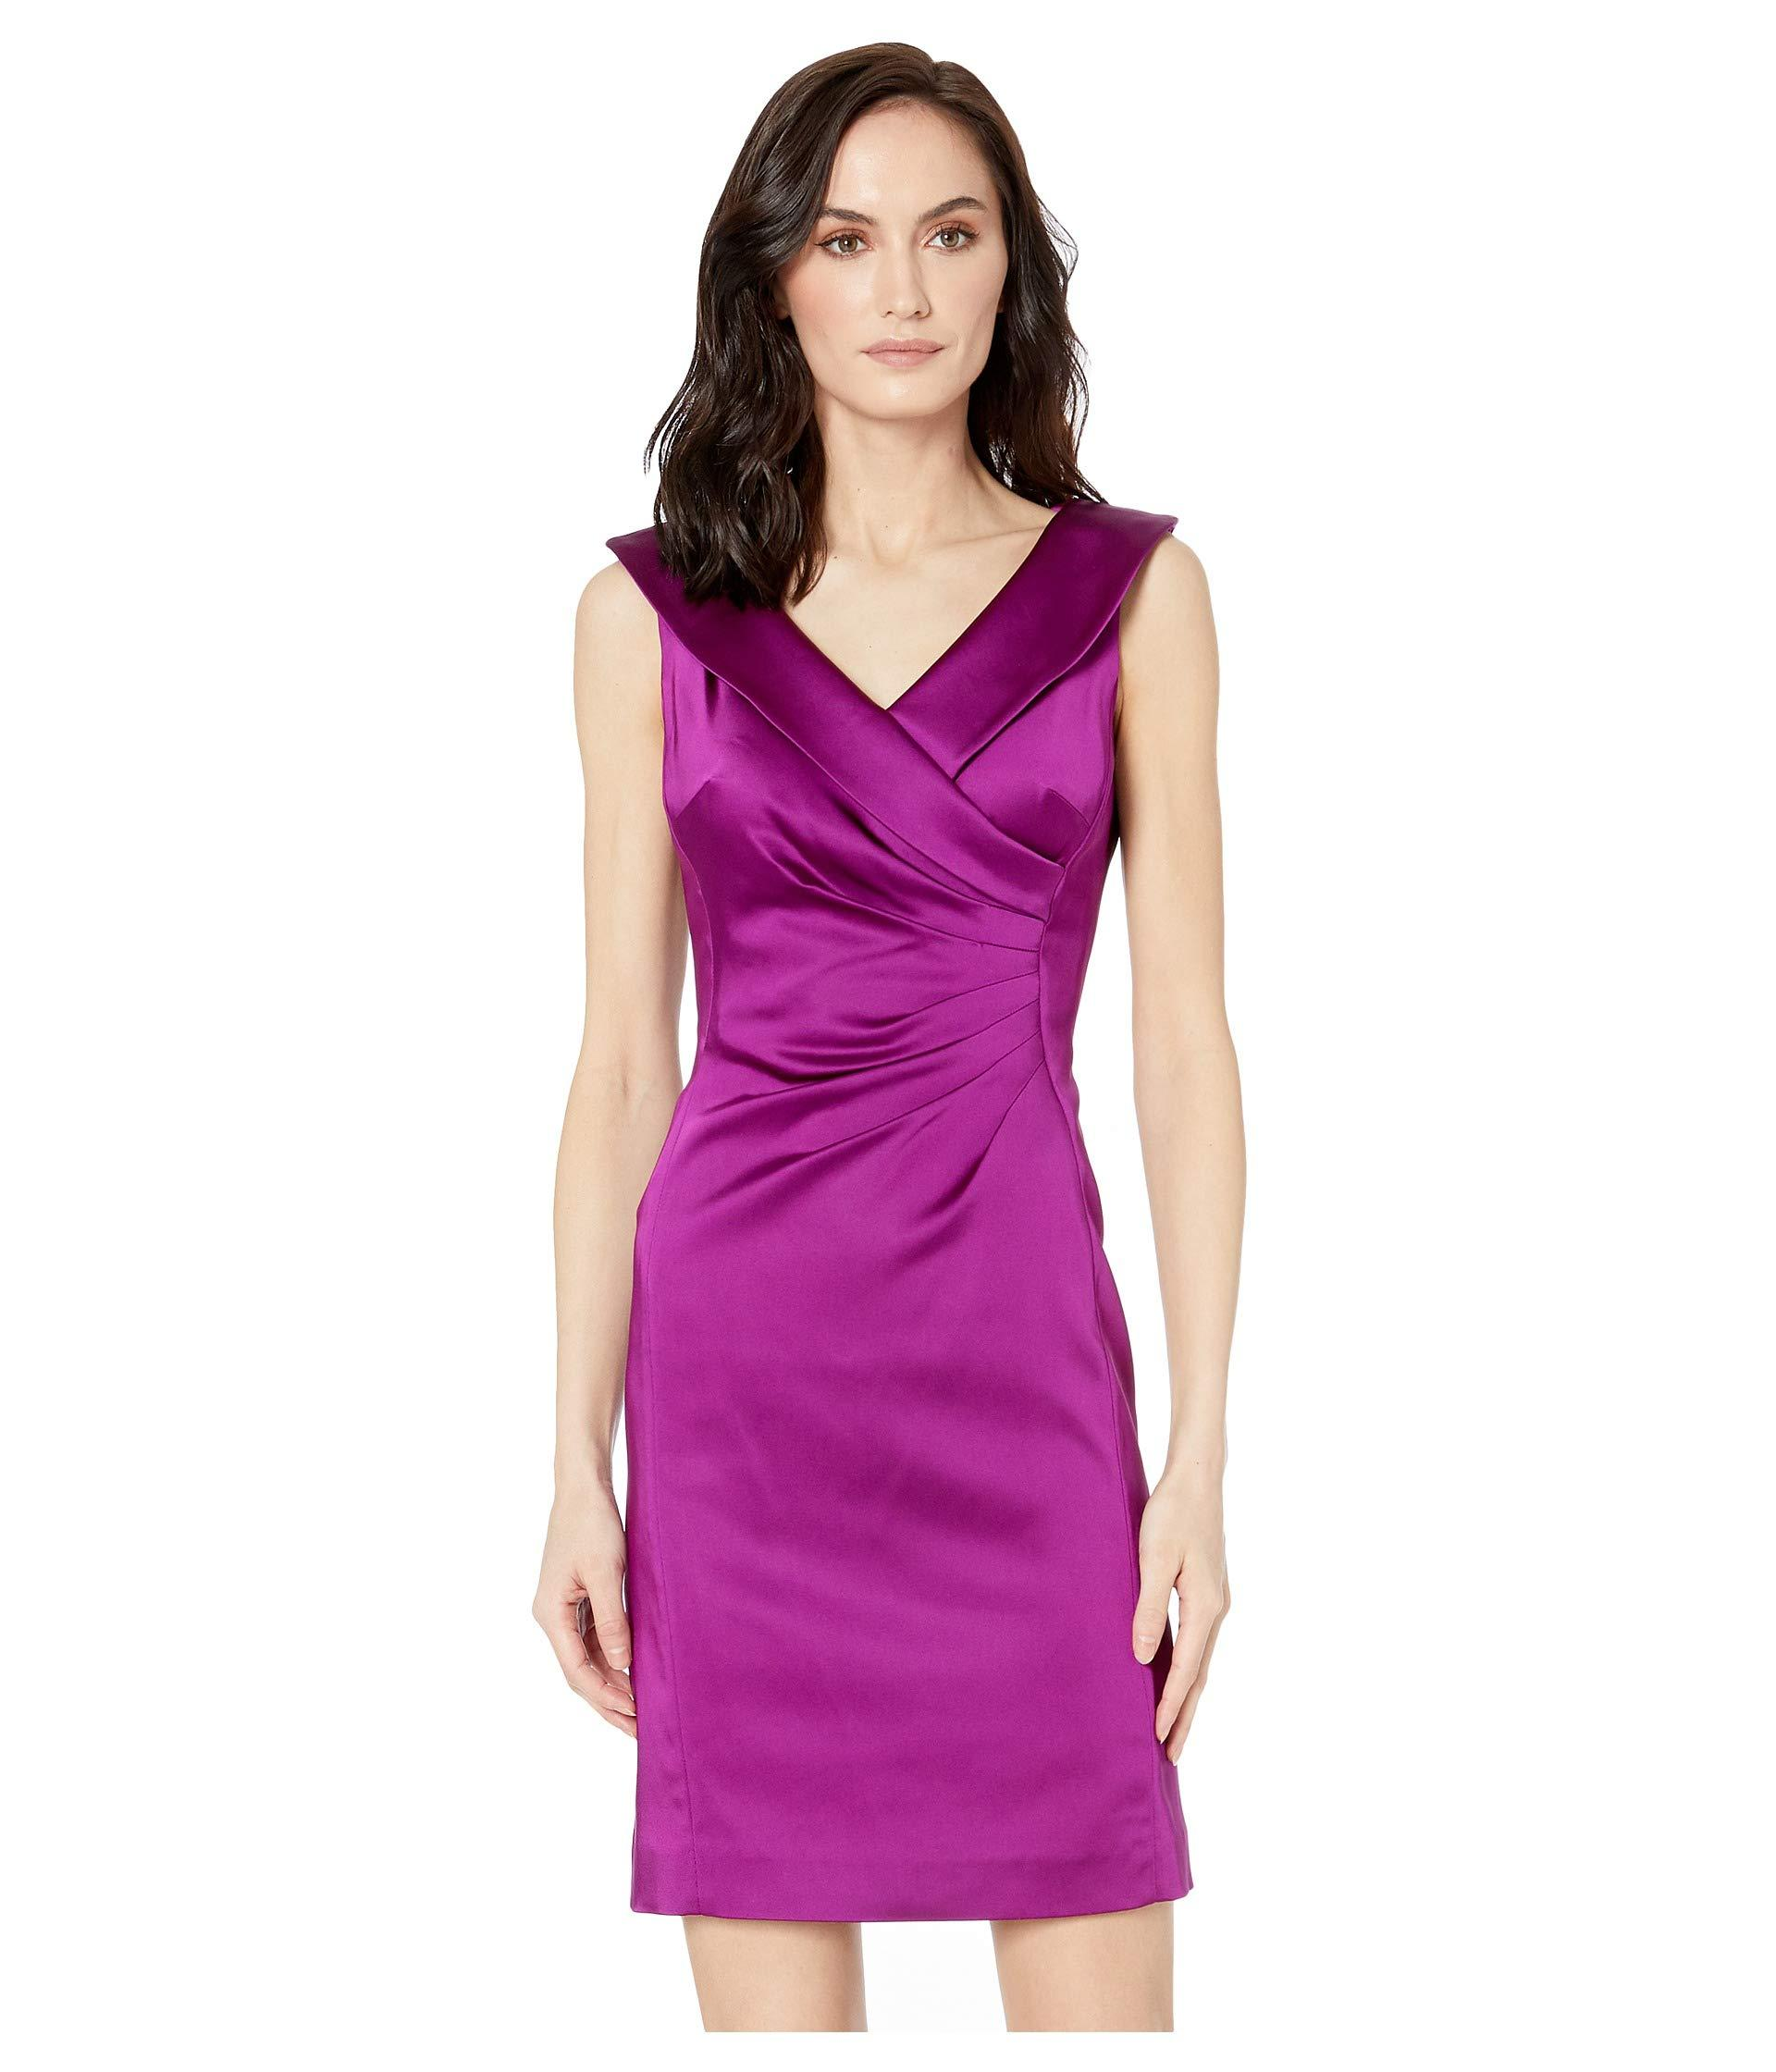 d2d27134 Lyst - Tahari Stretch Satin Dress With Side Ruching And Portrait ...